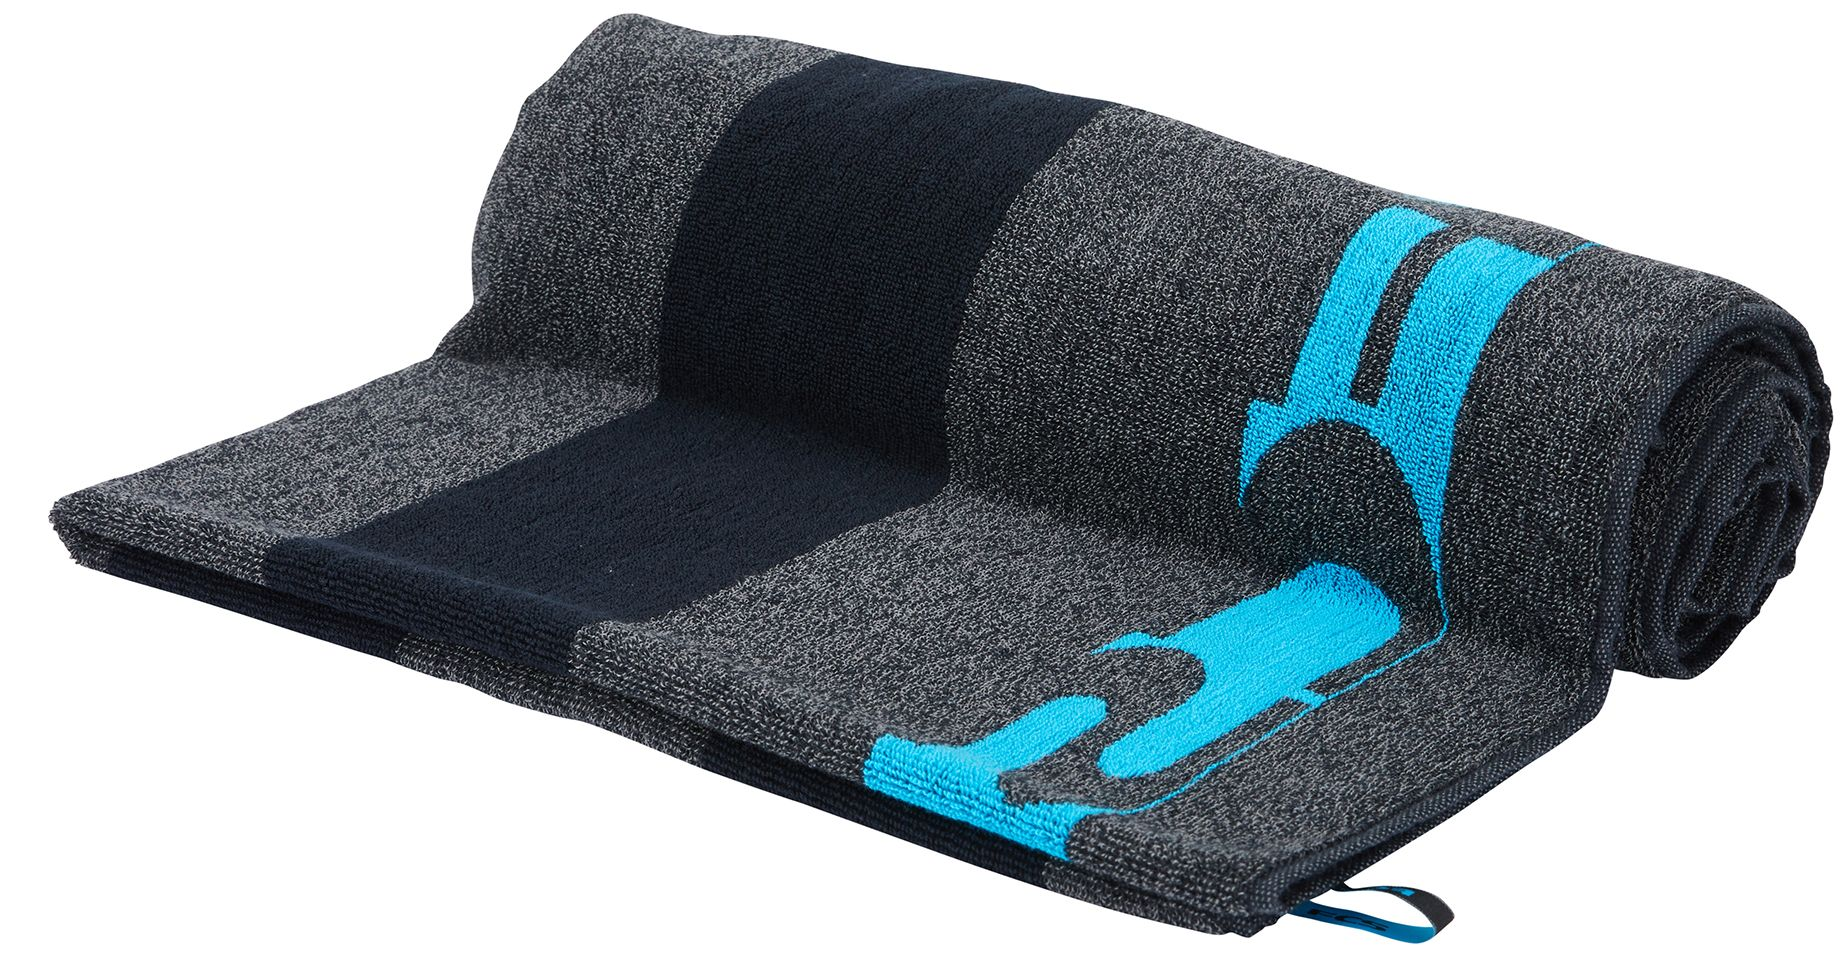 FCS_SJ_TOWEL_BLACK_SIDE.jpg